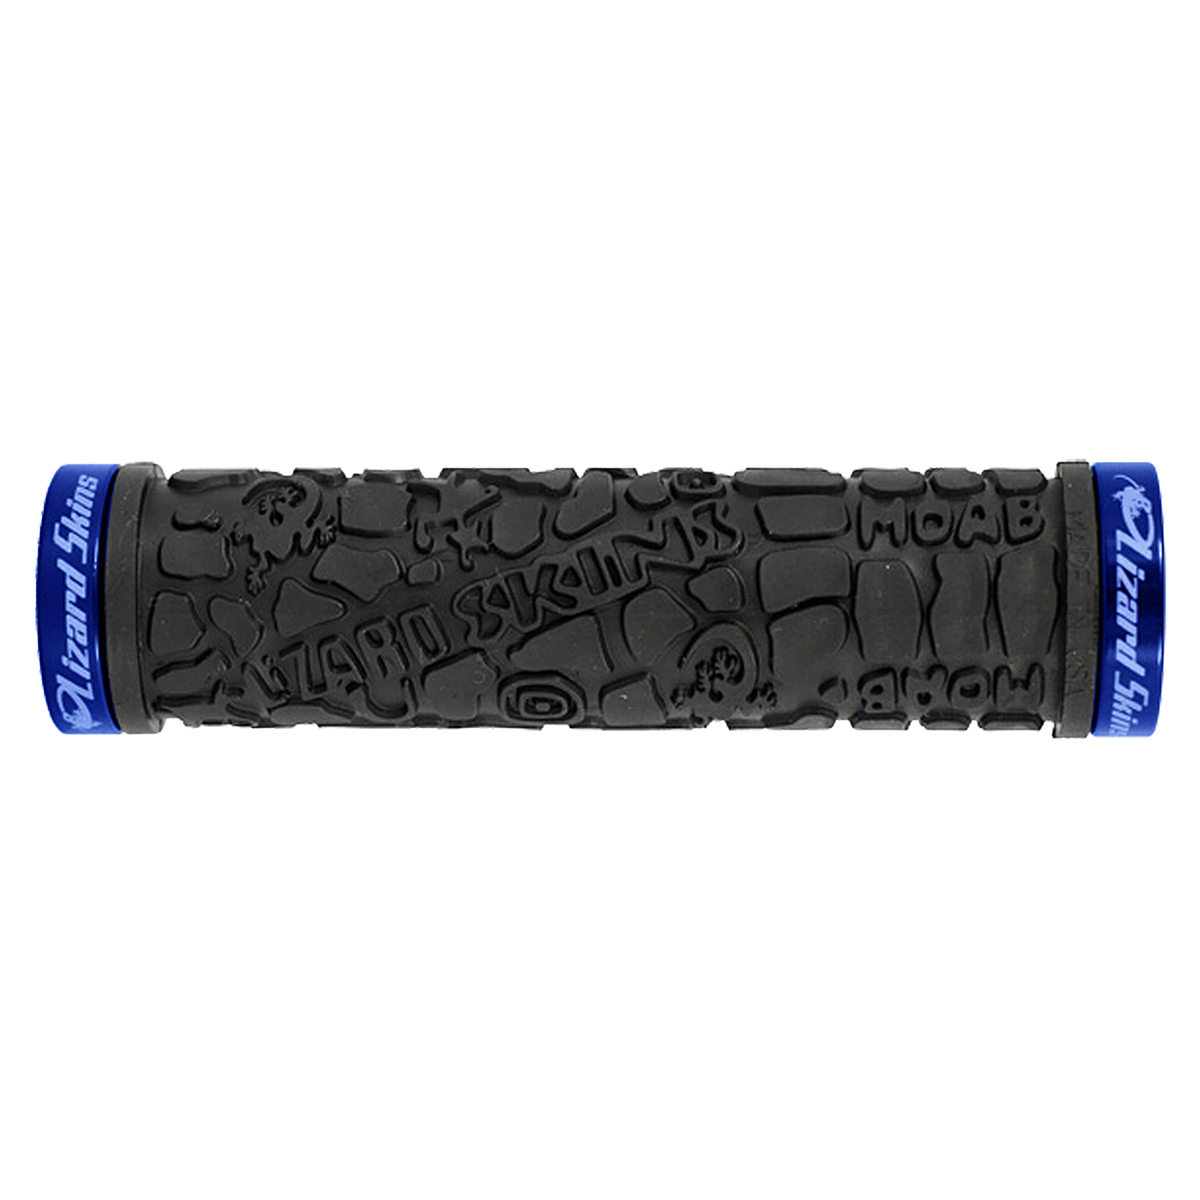 Lizard Skins Moab Lock On Grips Black Blue